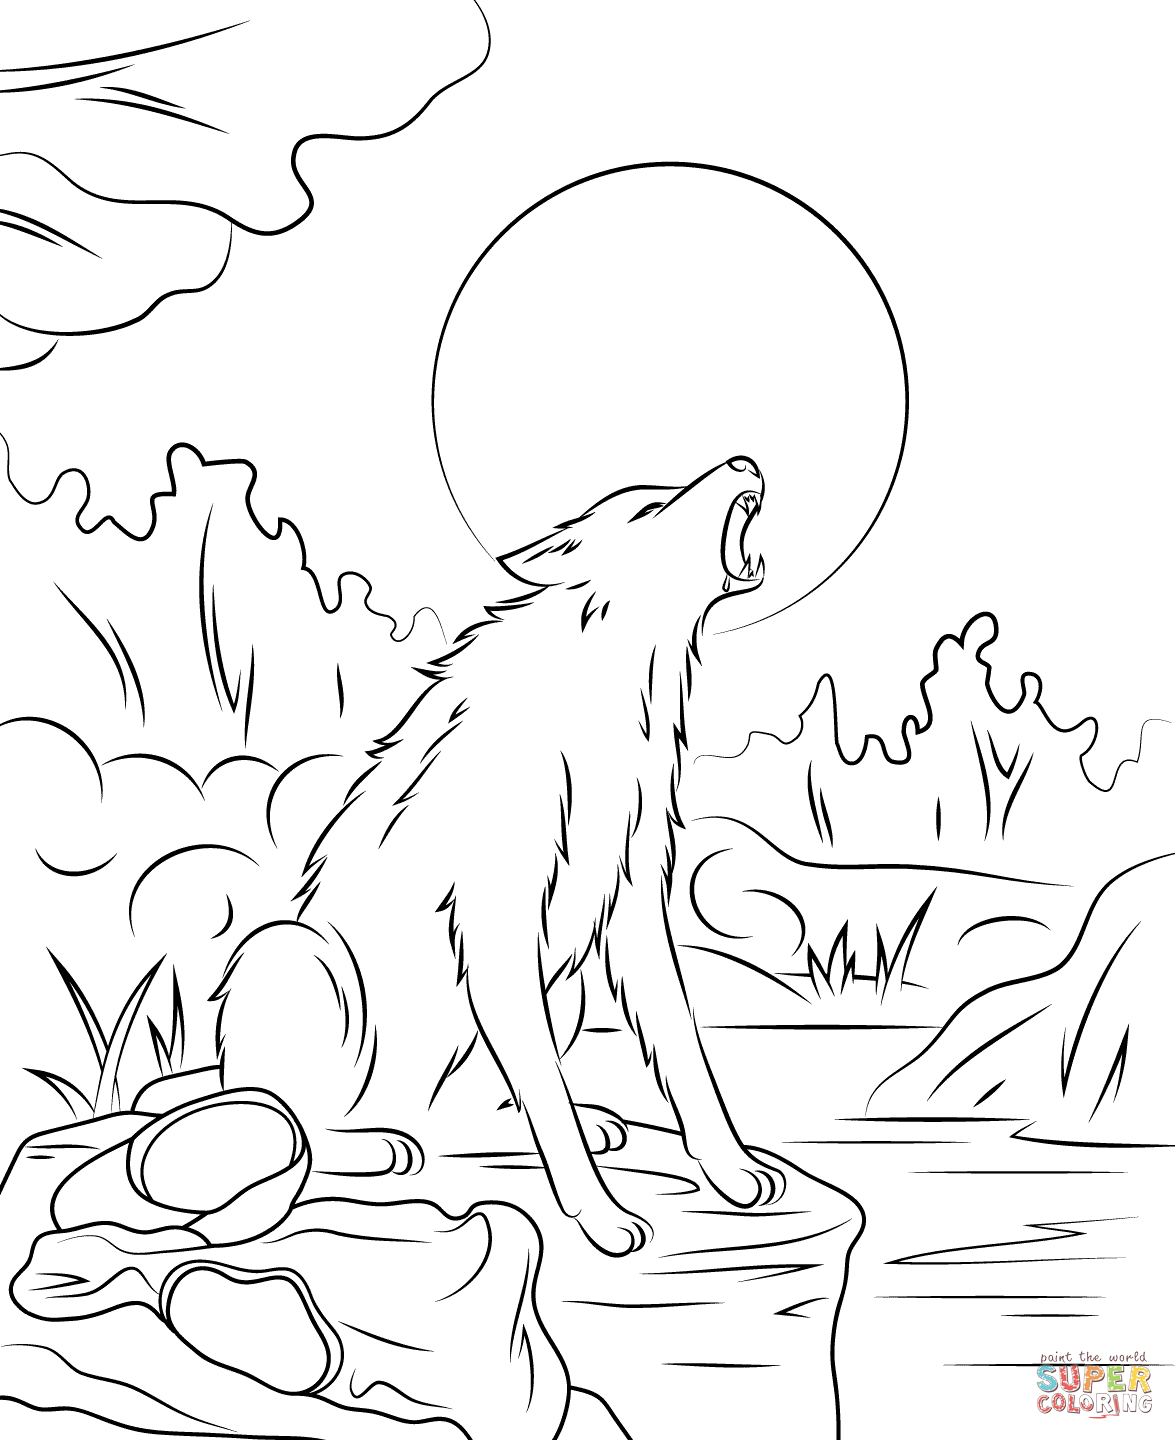 werewolf coloring pages printable werewolf coloring download werewolf coloring for free 2019 werewolf printable pages coloring